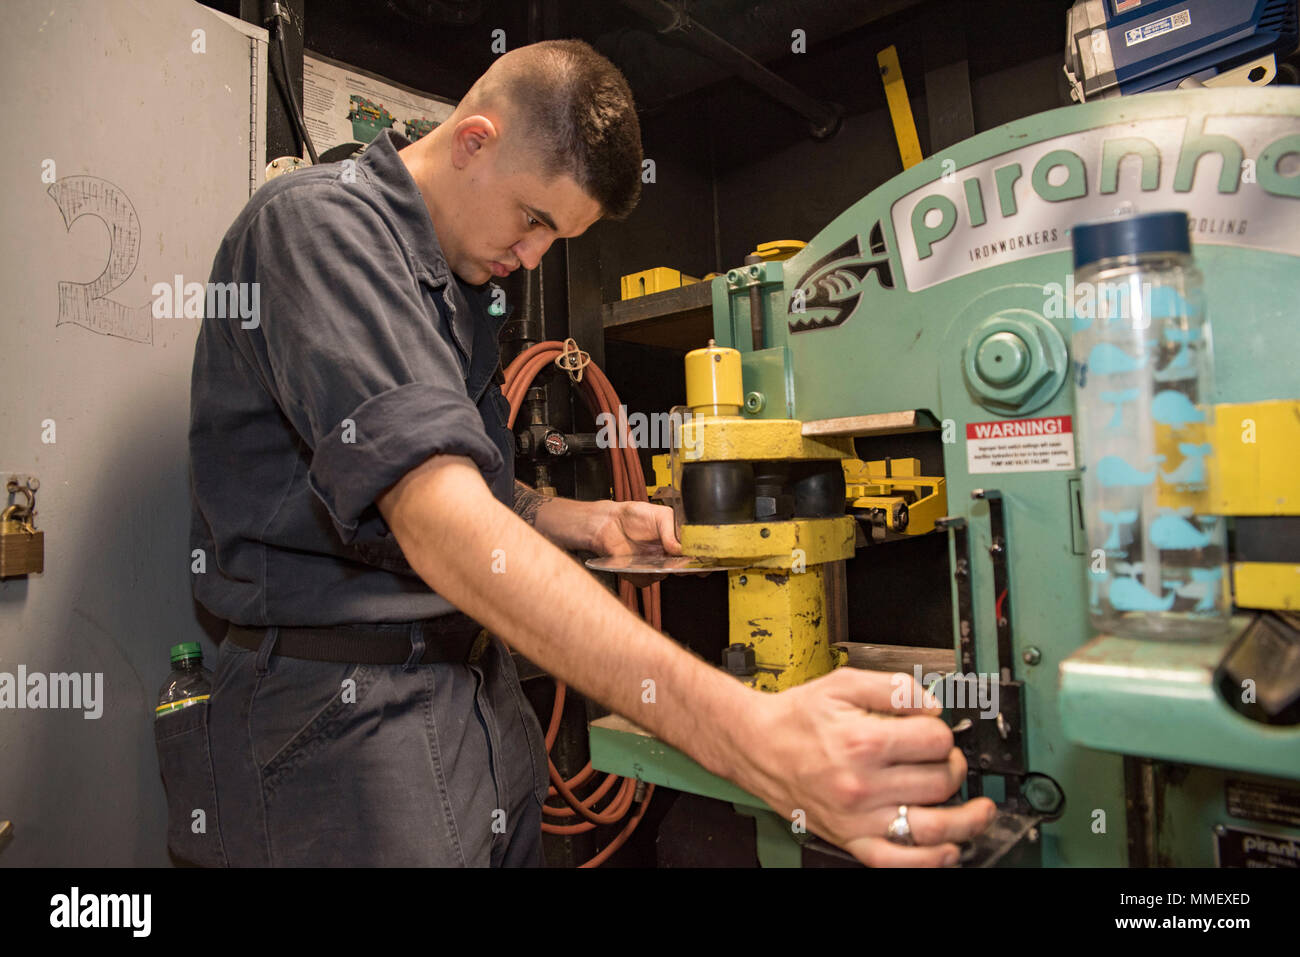 Punch Machine Stock Photos & Punch Machine Stock Images - Alamy